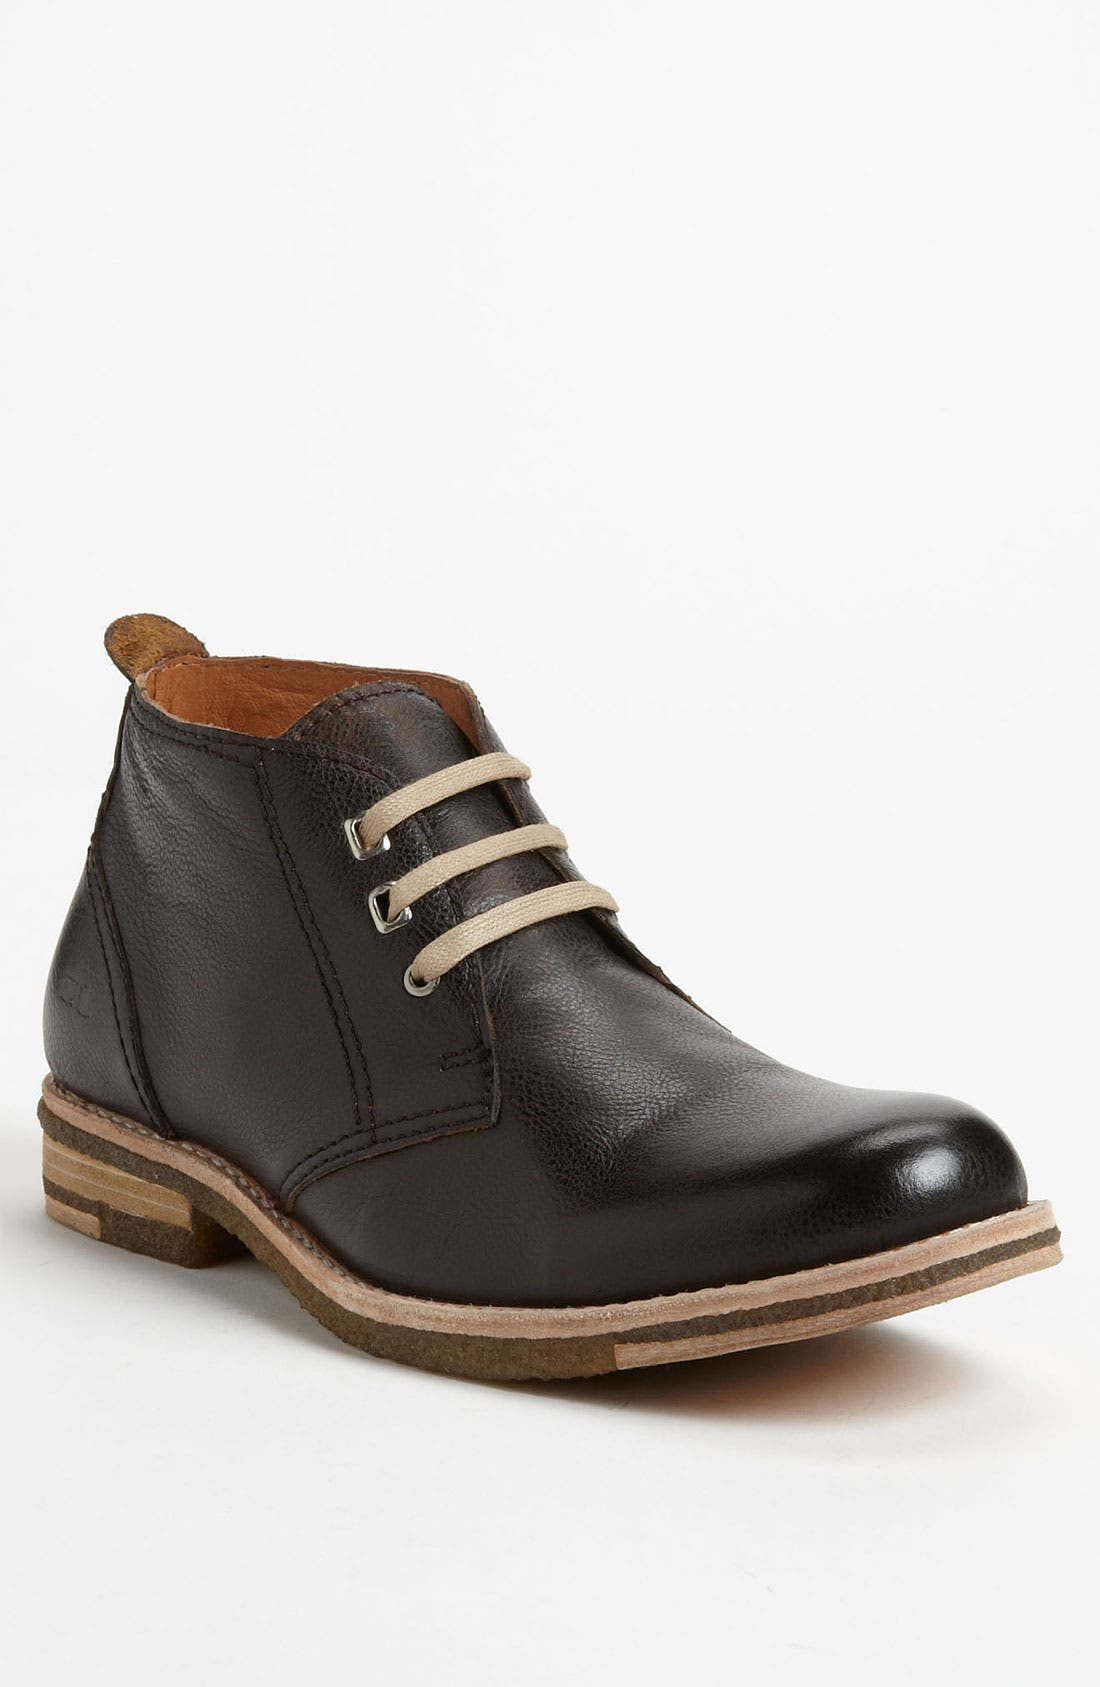 Alternate Image 1 Selected - Bed Stu 'Lucious' Chukka Boot (Online Only)